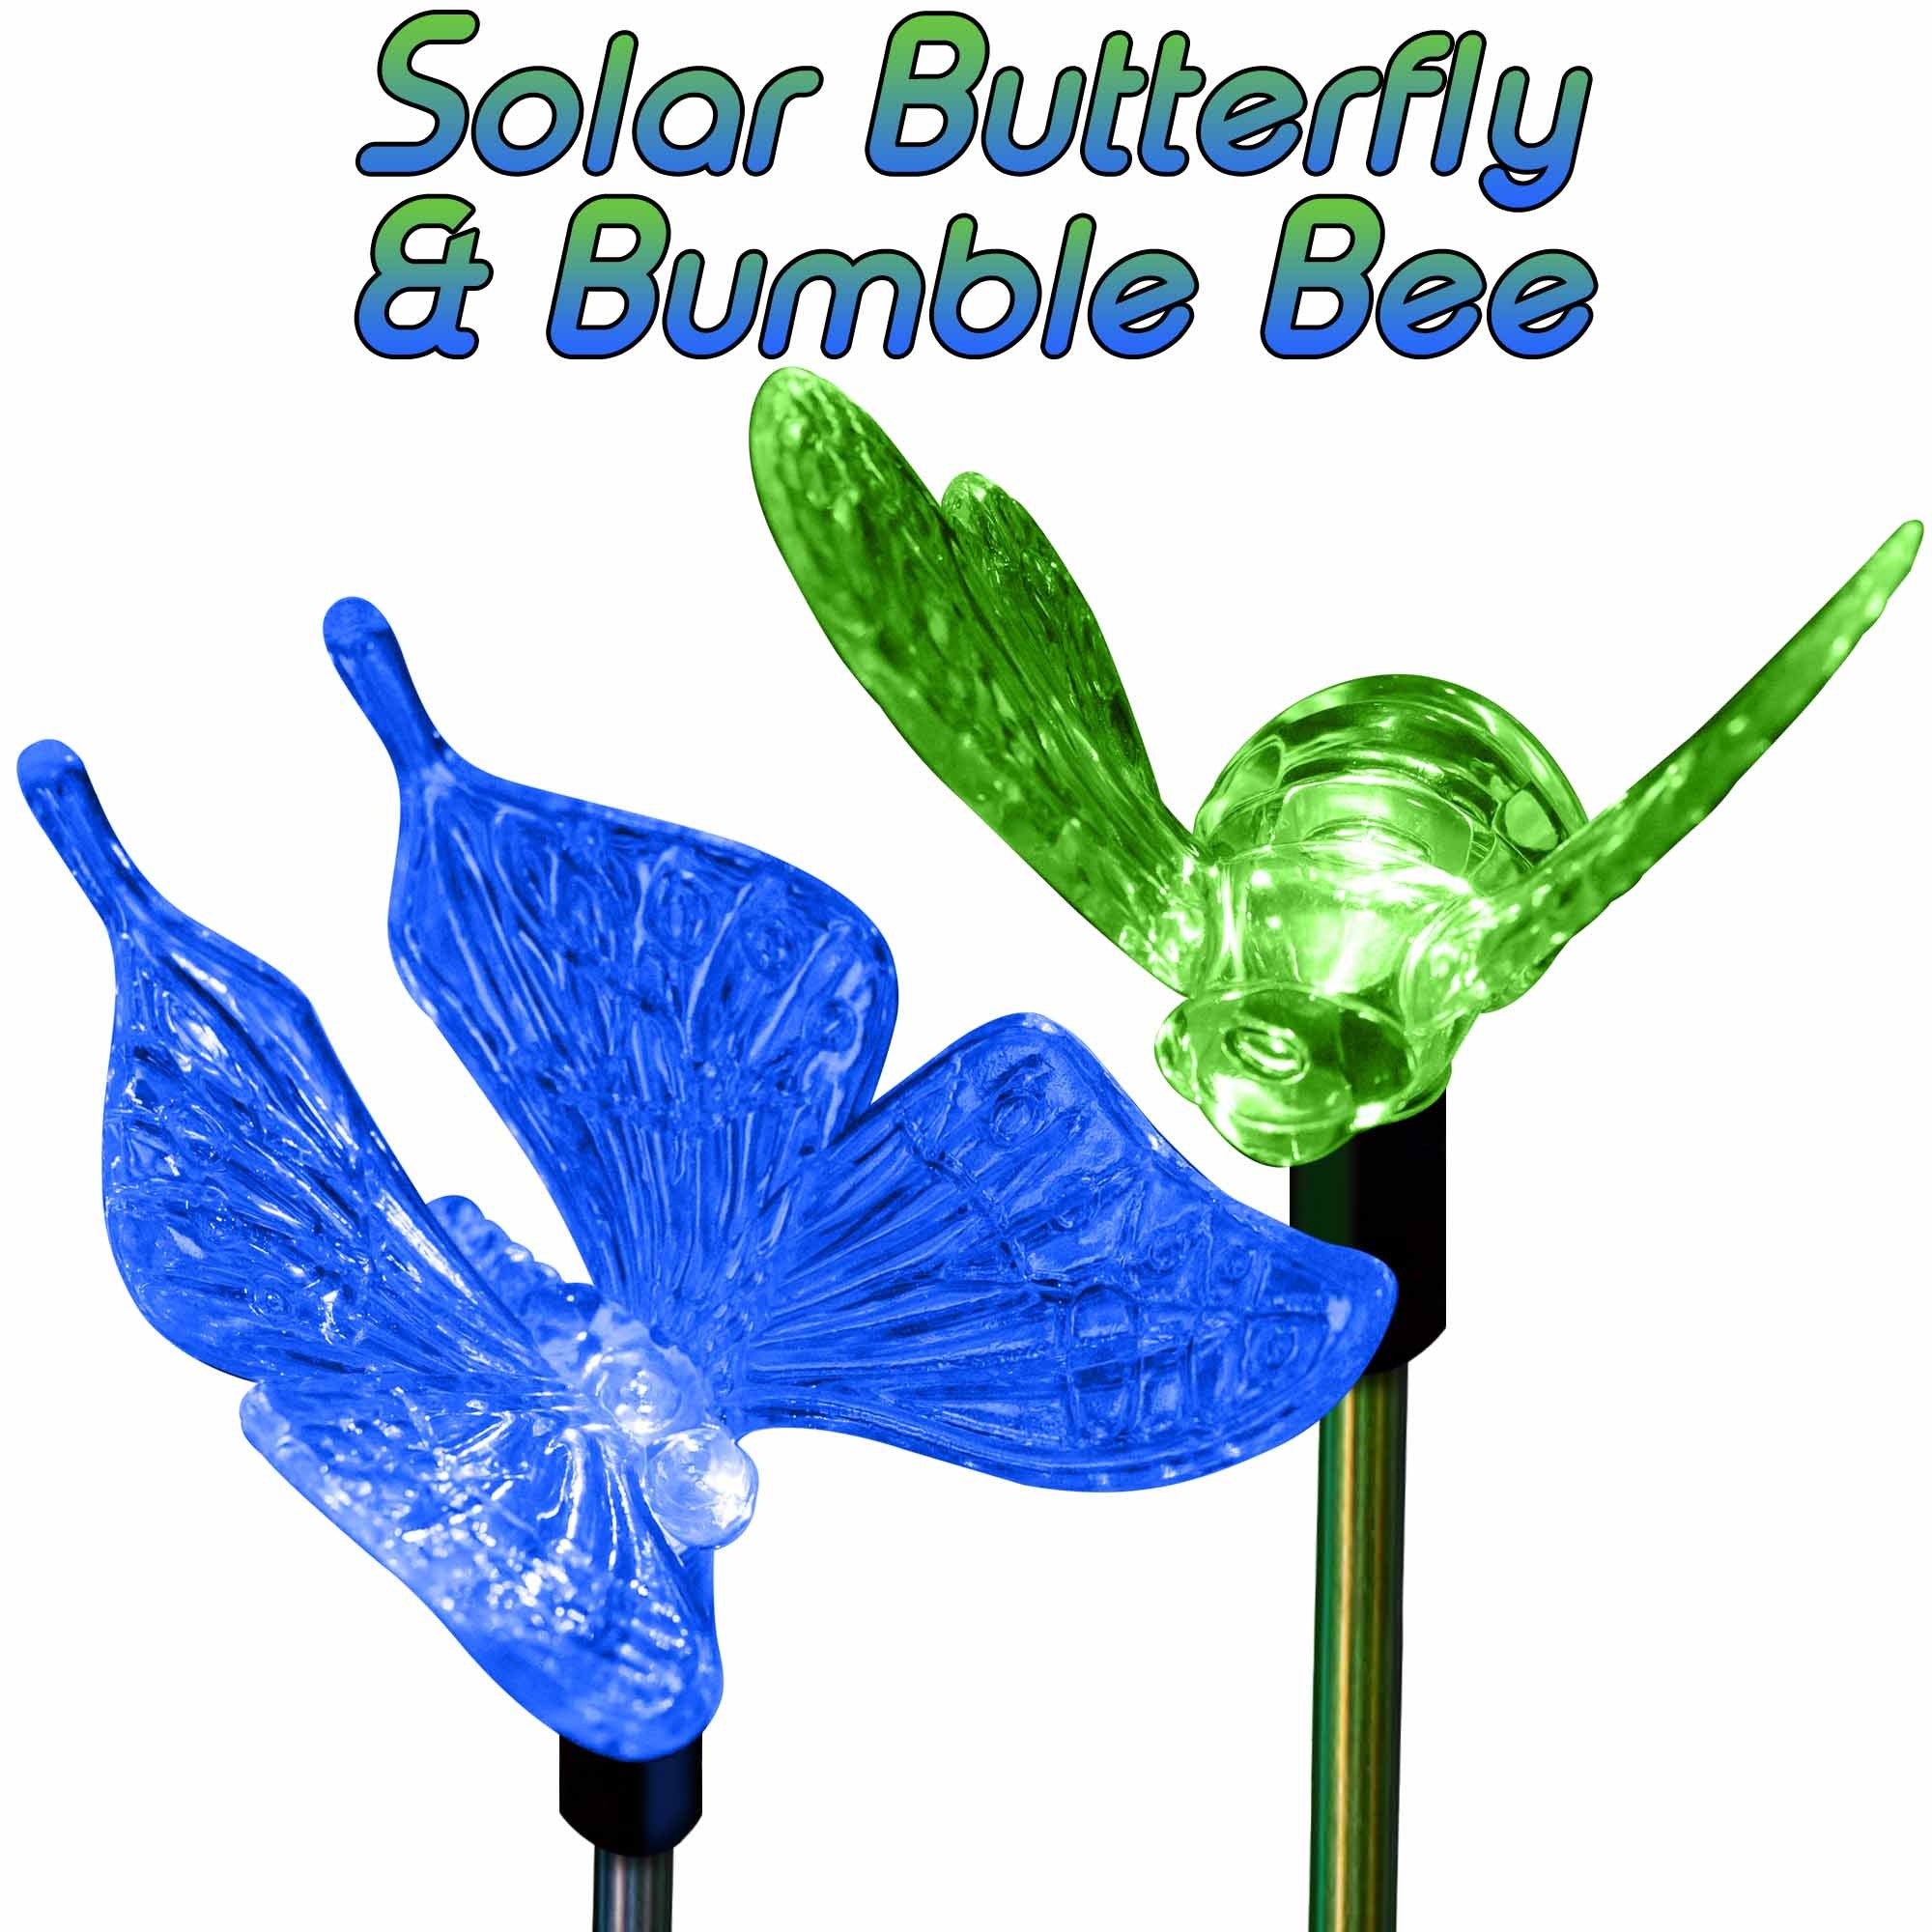 Garden Solar Lights Color Changing Butterfly U0026 Bumble Bee Stake Lights  Landscape Pathway Lighting   My ...